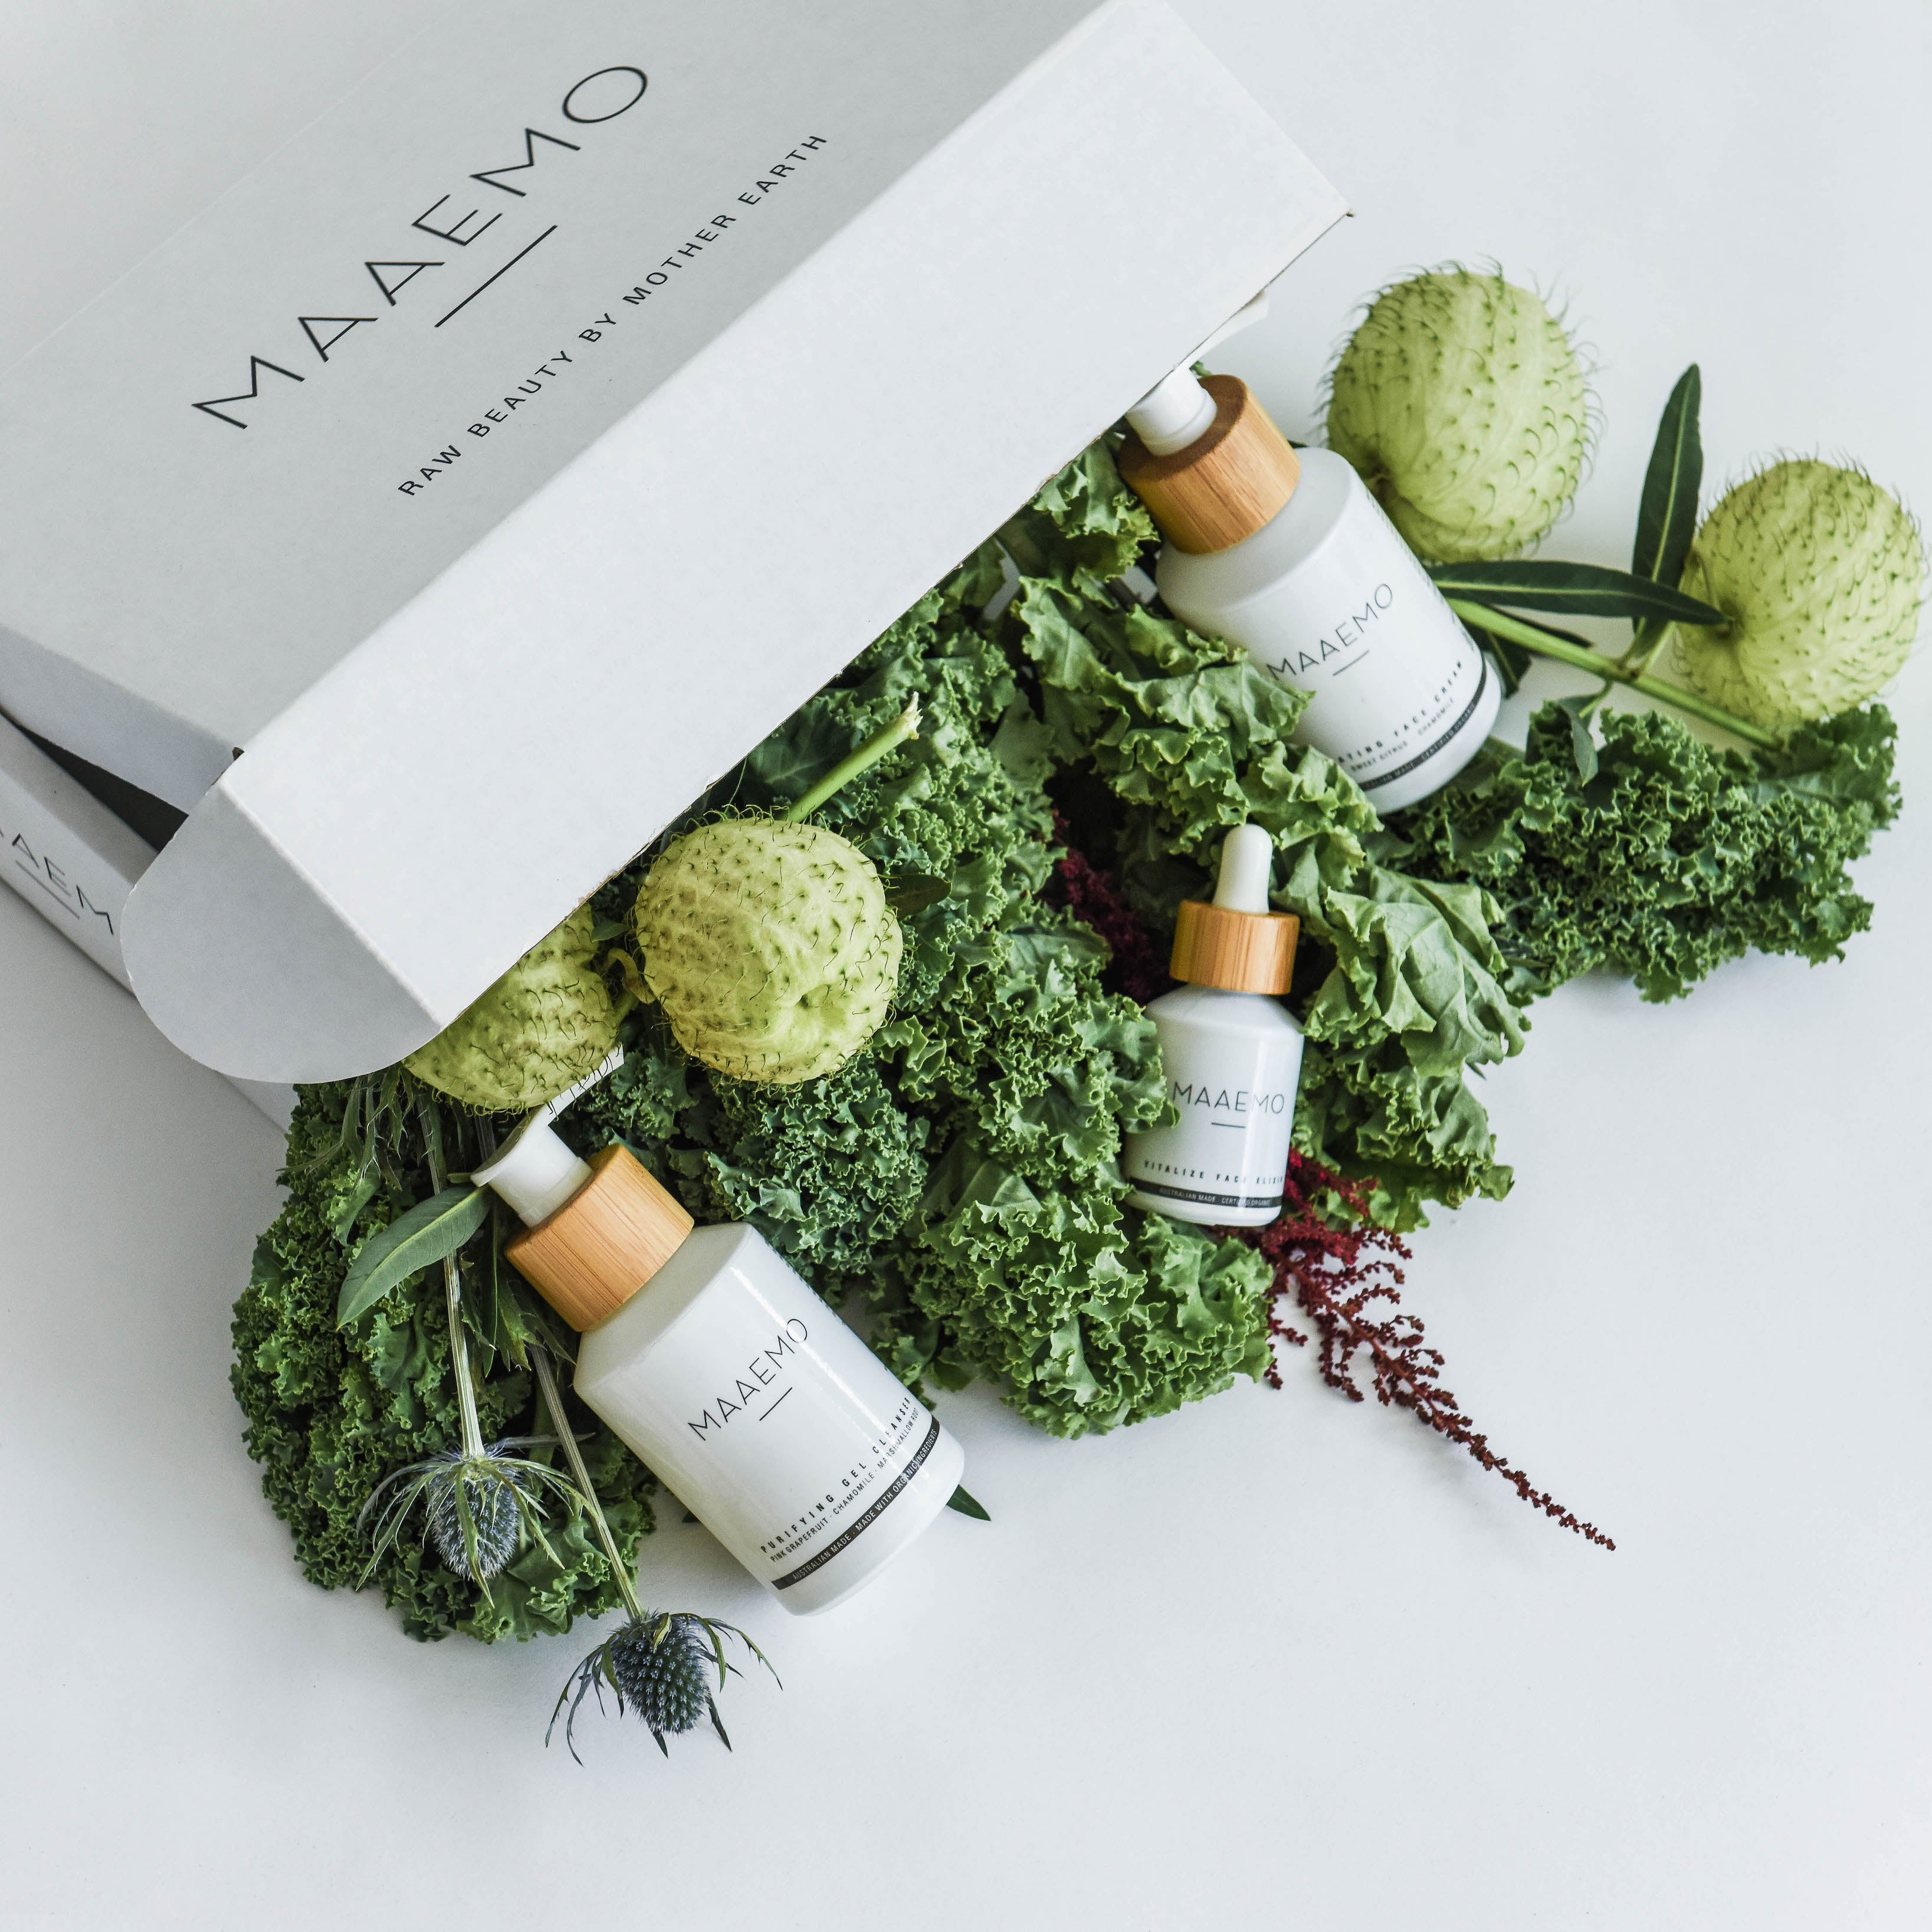 MAAEMO Vitalize Face Elixir-ACO Certified Organic 全效臉部煥膚精華油-獲澳洲有機認證